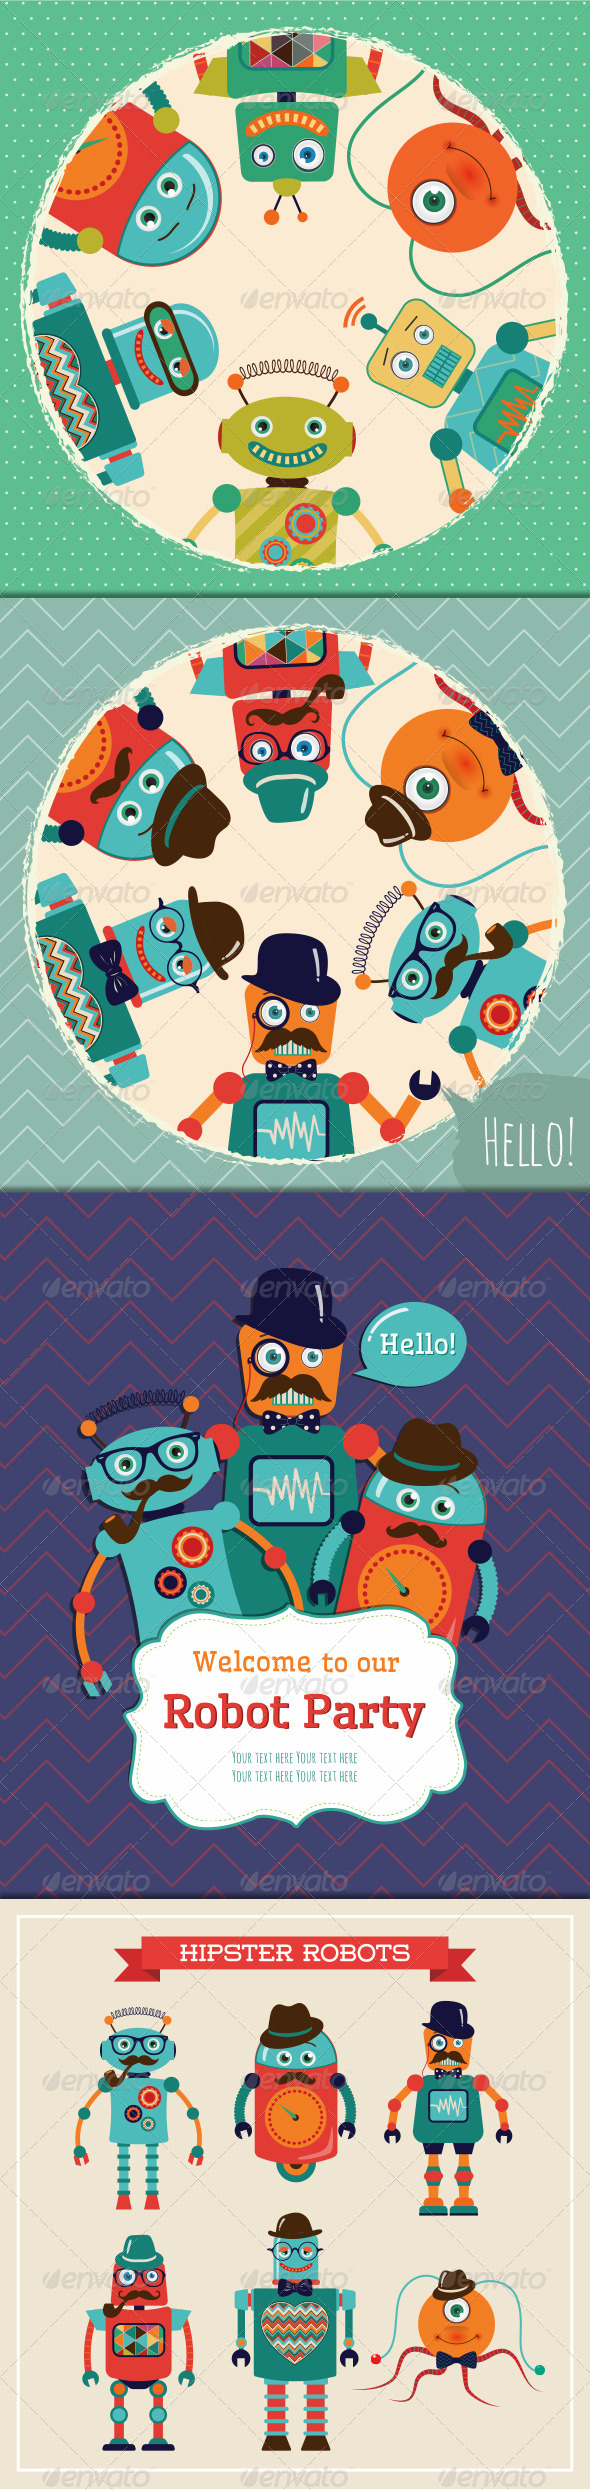 Vintage Banners and Cards with Hipster Robots - Characters Vectors